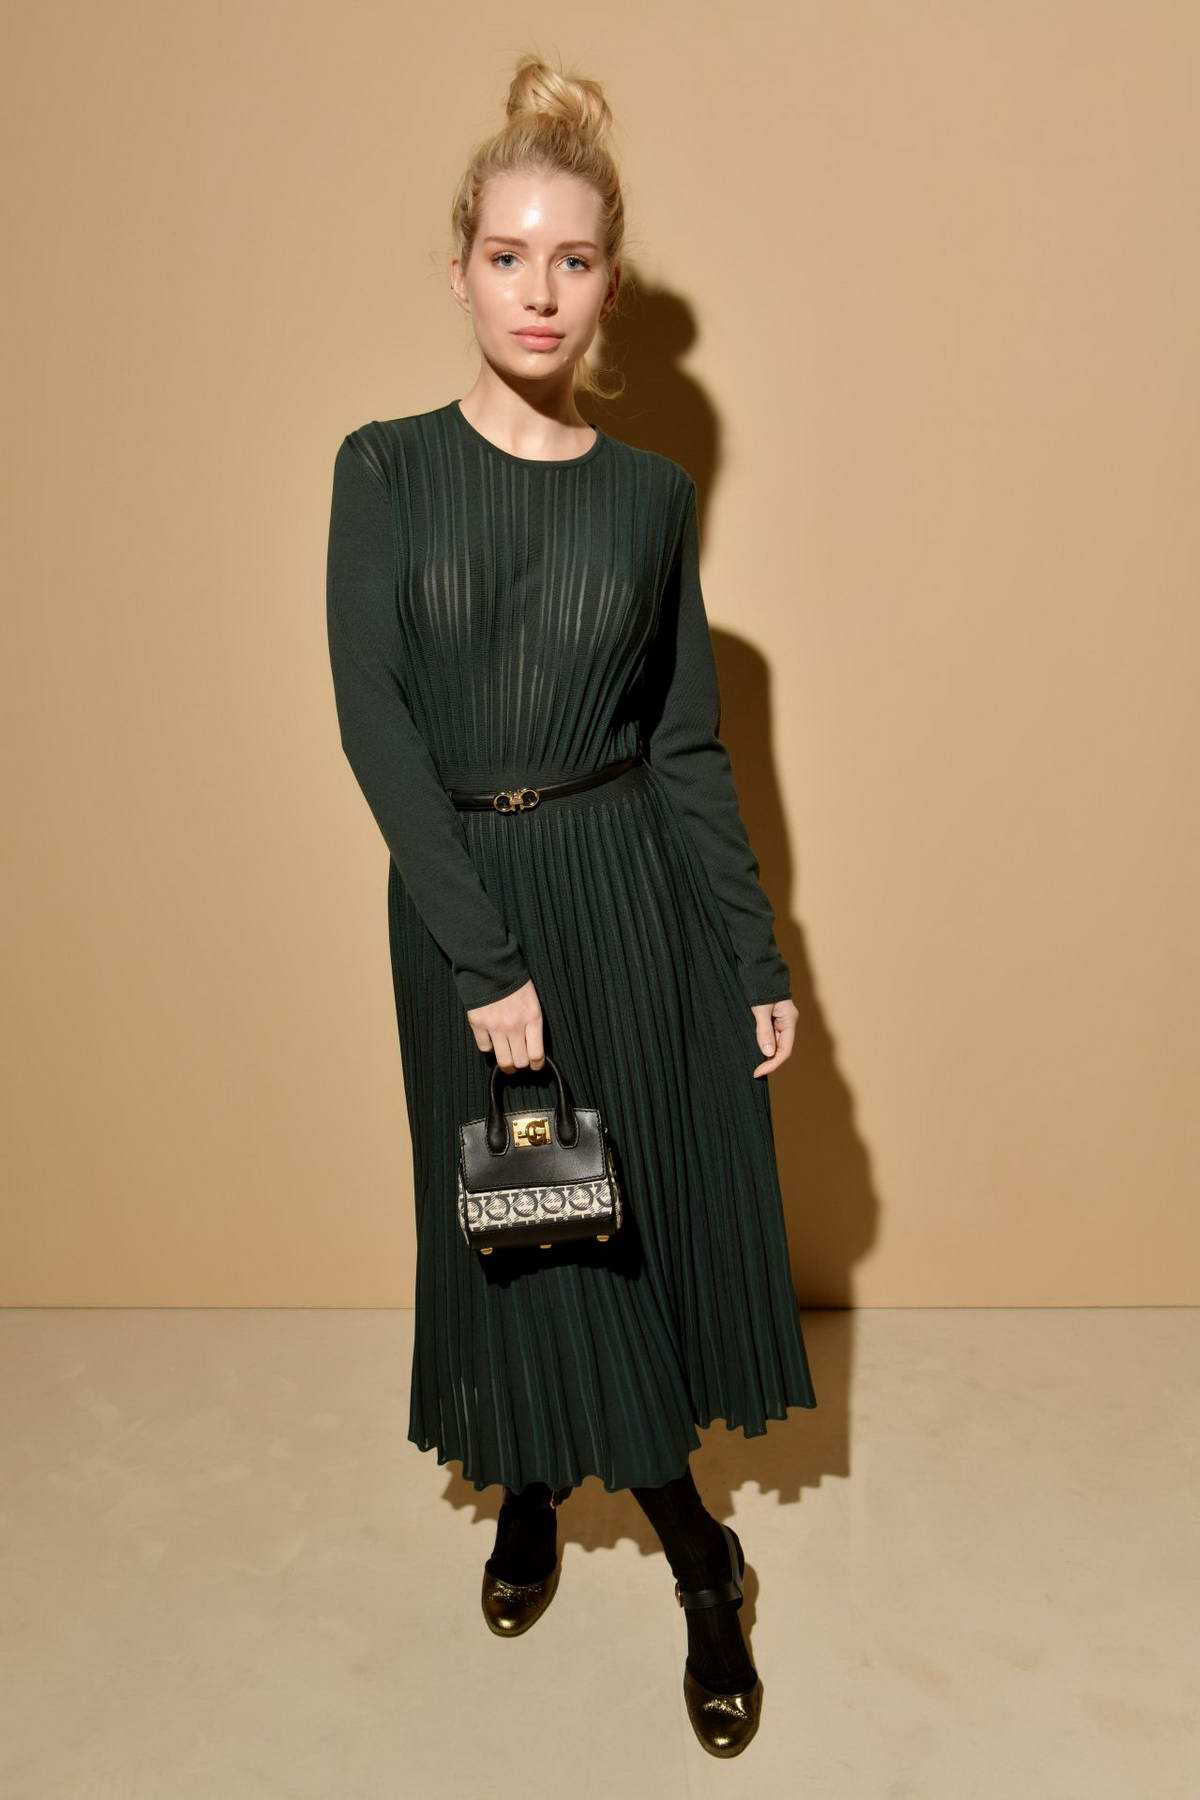 Lottie Moss attends the Salvatore Ferragamo Show, Fall Winter 2019 during Milan Fashion Week in Milan, Italy